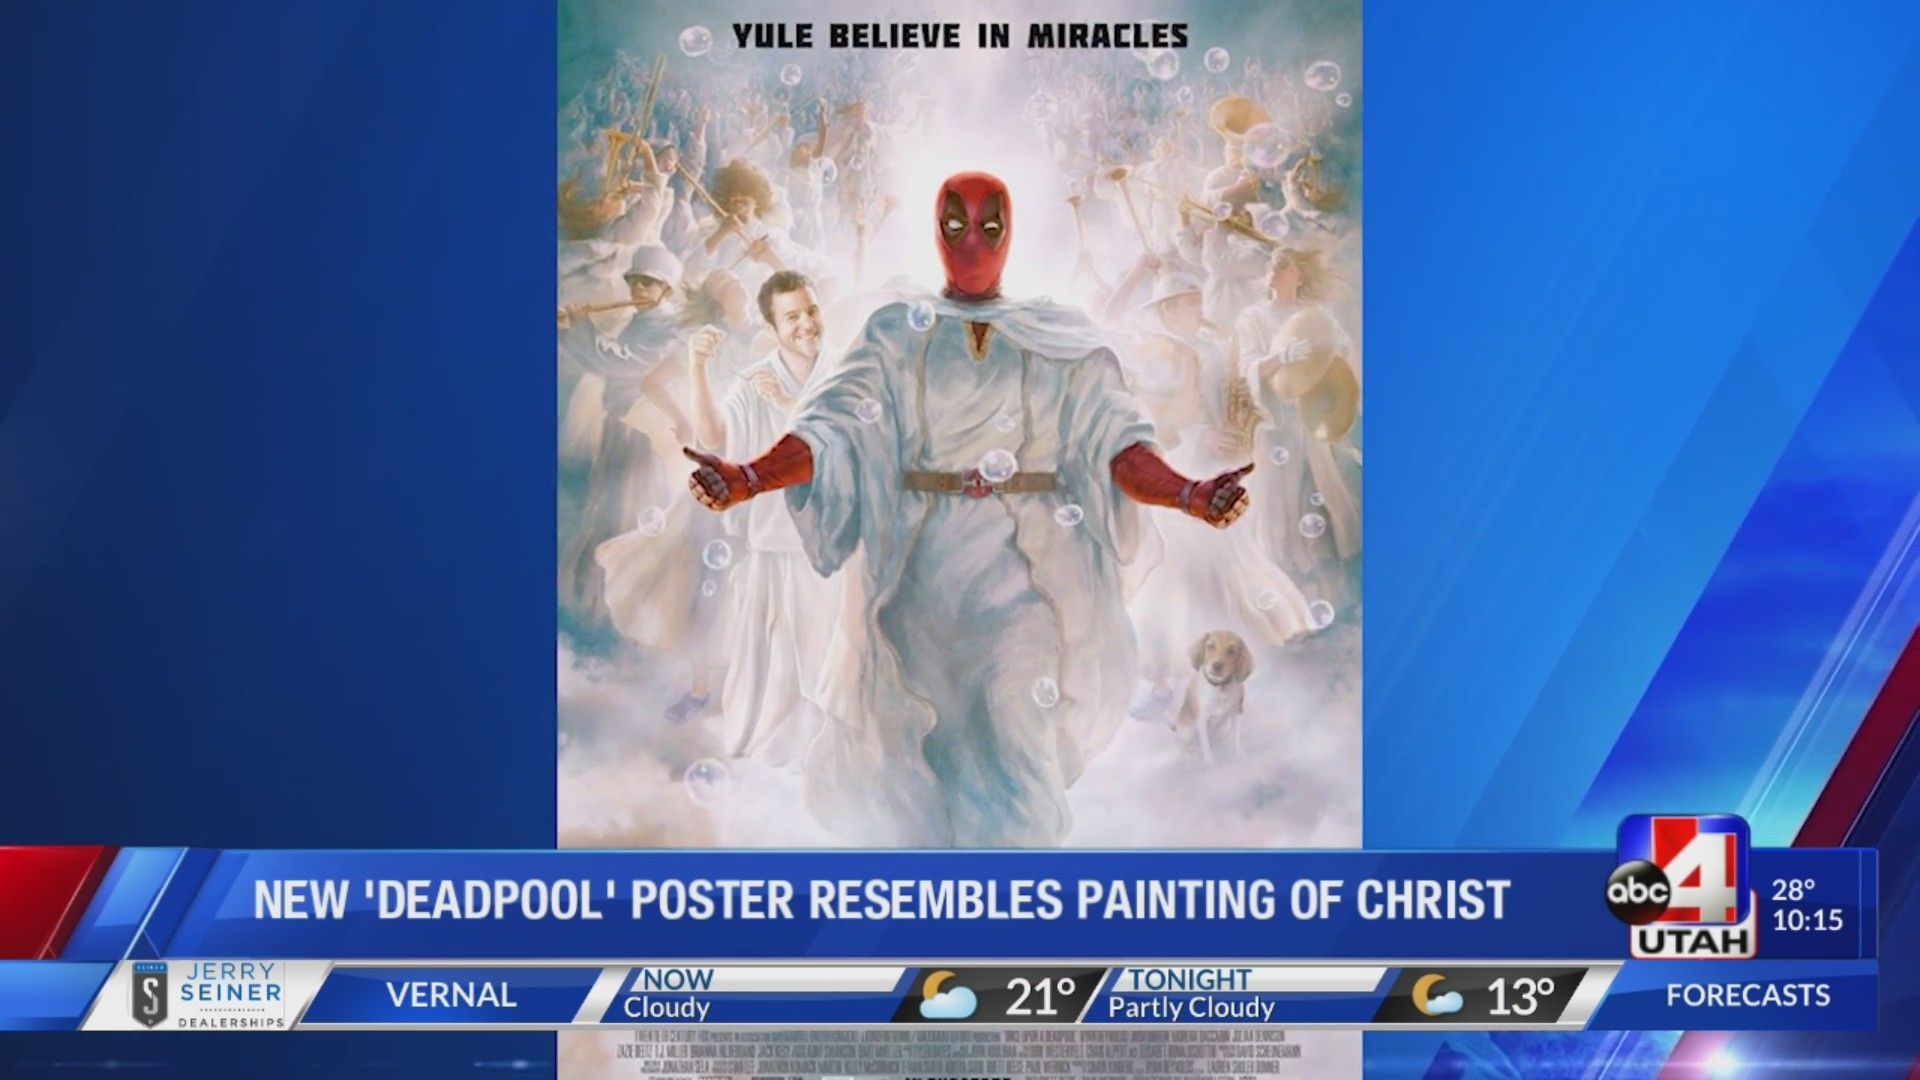 New Deadpool movie poster resembles painting of Jesus Christ often used by the LDS Church